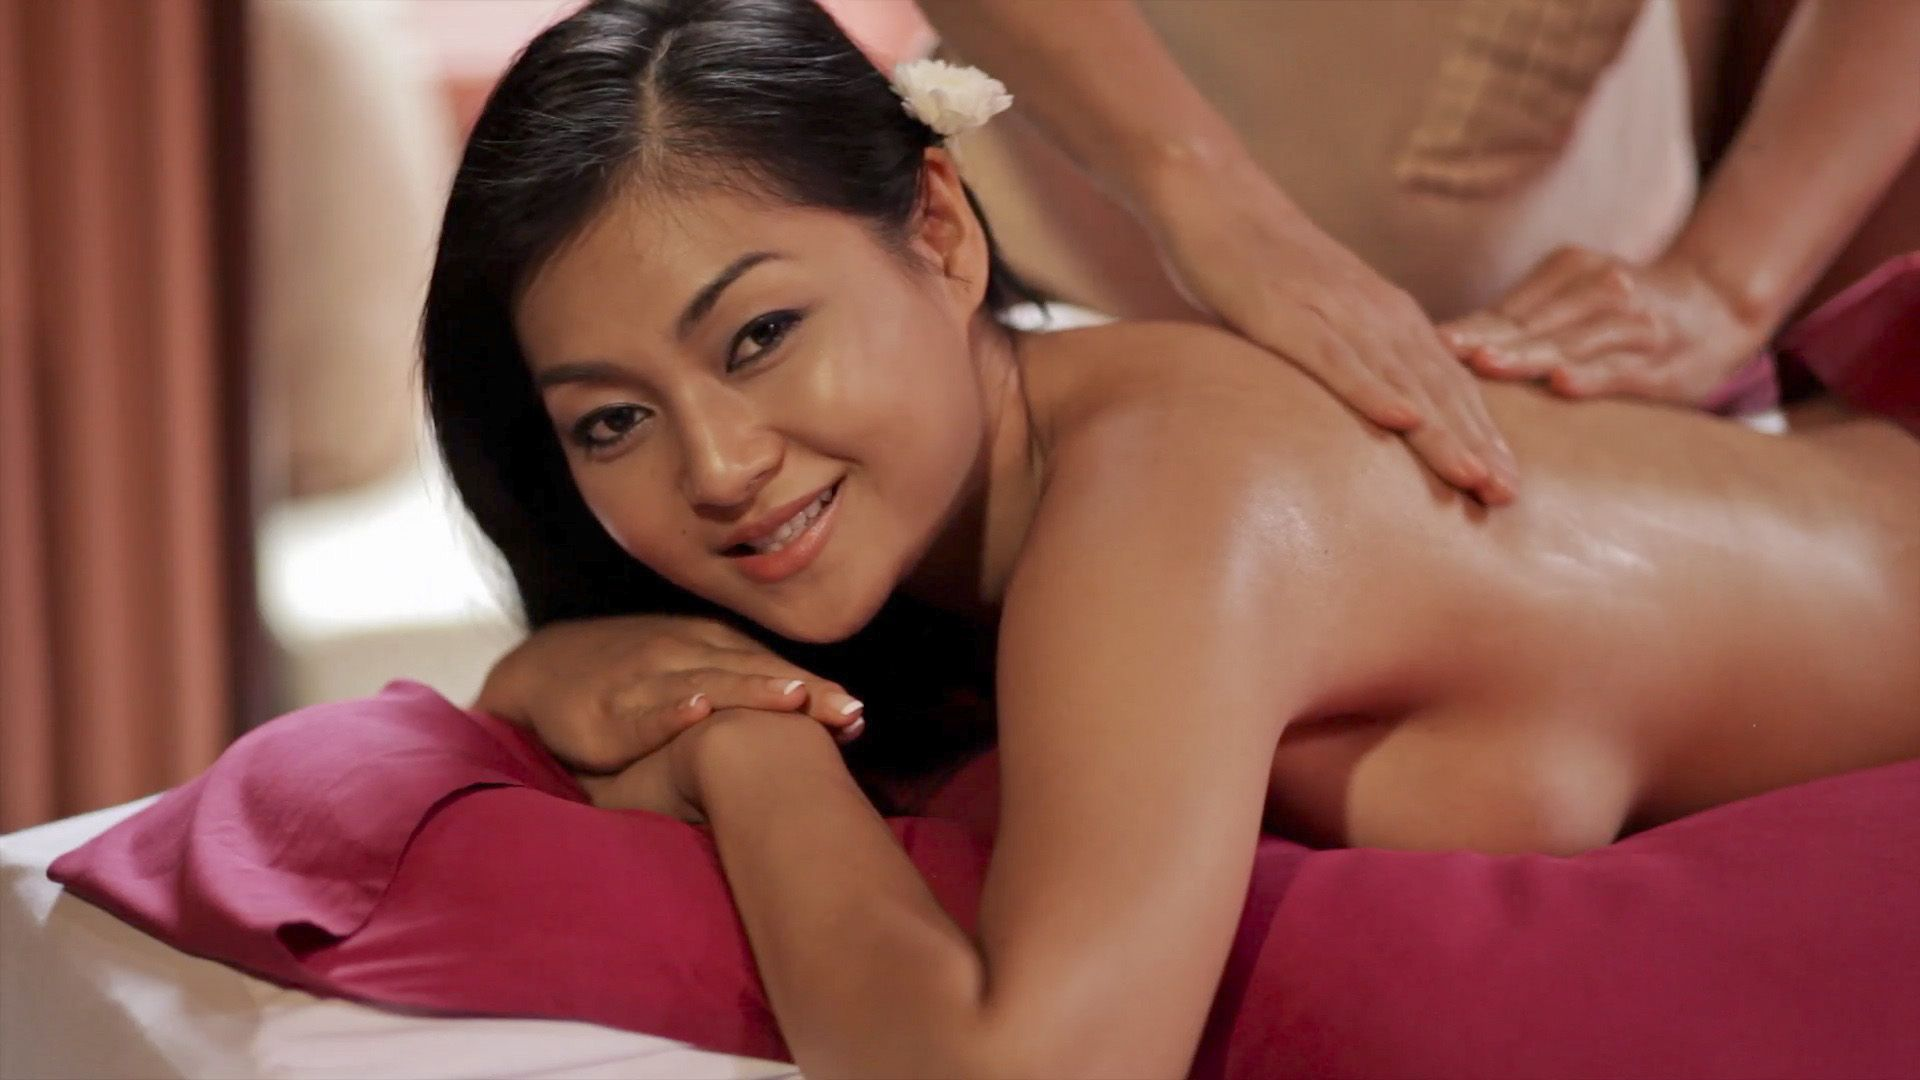 Thai massage in driving car turns to wild hardcore fuck sex clip